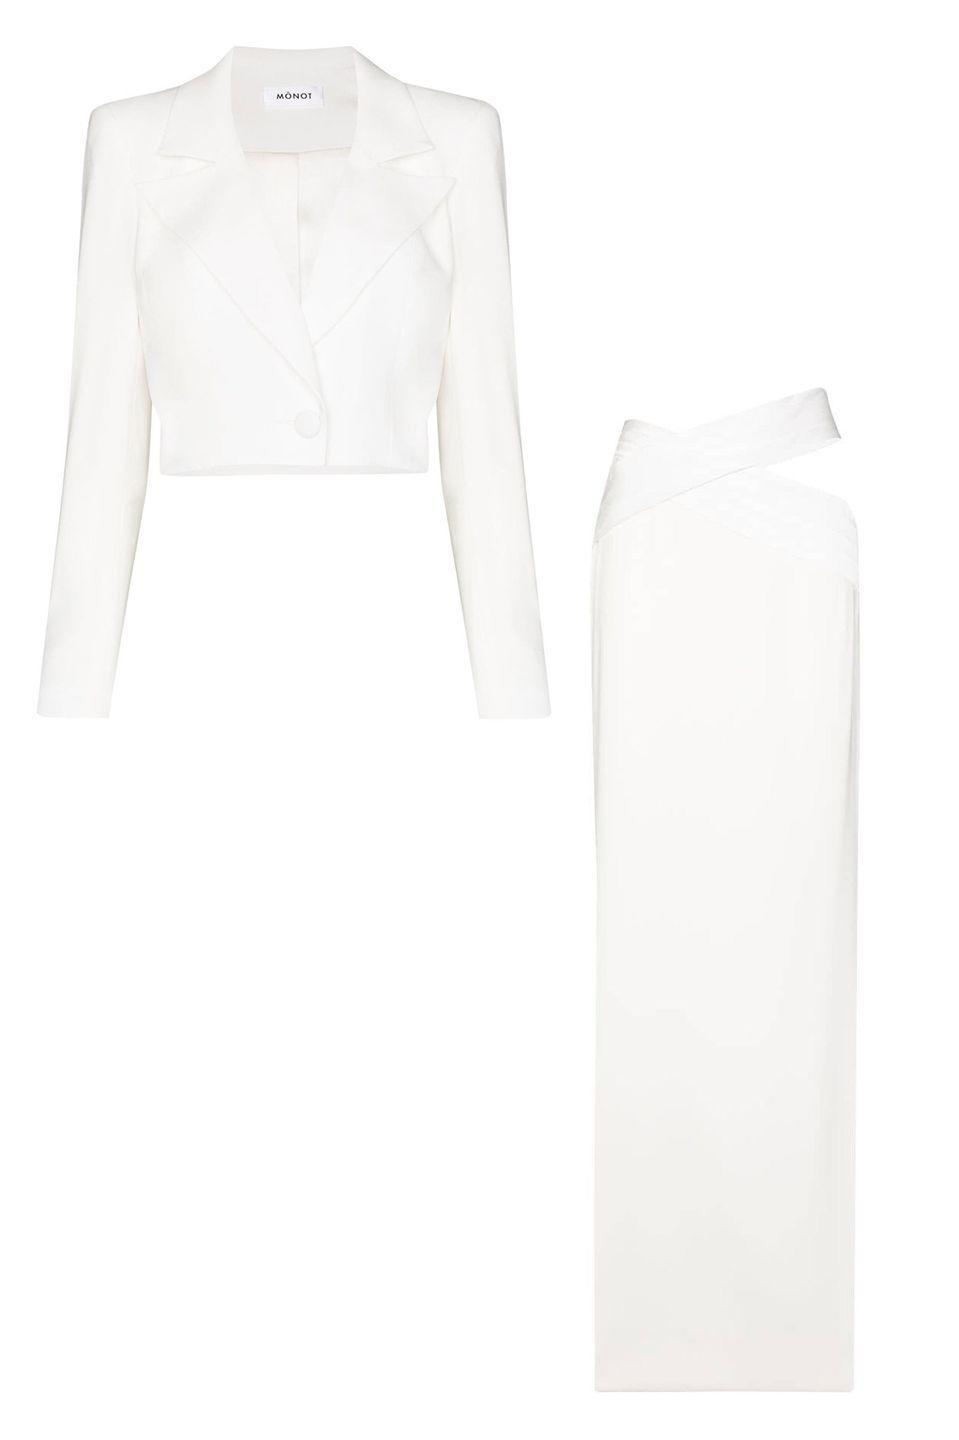 "<p>A cropped jacket and sexy, cutout maxi skirt is a late-night riff on suiting that will have all eyes on you—even if it's just you two.</p><p><em>Cropped jacket, $1,015, <a href=""https://www.farfetch.com/shopping/women/monot-cropped-single-breasted-blazer-item-15388746.aspx"" rel=""nofollow noopener"" target=""_blank"" data-ylk=""slk:farfetch.com"" class=""link rapid-noclick-resp"">farfetch.com</a></em> <a class=""link rapid-noclick-resp"" href=""https://go.redirectingat.com?id=74968X1596630&url=https%3A%2F%2Fwww.farfetch.com%2Fshopping%2Fwomen%2Fmonot-cropped-single-breasted-blazer-item-15388746.aspx&sref=https%3A%2F%2Fwww.harpersbazaar.com%2Fwedding%2Fbridal-fashion%2Fg35154193%2Fbest-wedding-suits-for-women%2F"" rel=""nofollow noopener"" target=""_blank"" data-ylk=""slk:SHOP"">SHOP</a></p><p><em>Cut-out skirt, $970, <a href=""https://www.farfetch.com/shopping/women/monot-cutout-maxi-skirt-item-15390473.aspx"" rel=""nofollow noopener"" target=""_blank"" data-ylk=""slk:farfetch.com"" class=""link rapid-noclick-resp"">farfetch.com</a></em> <a class=""link rapid-noclick-resp"" href=""https://go.redirectingat.com?id=74968X1596630&url=https%3A%2F%2Fwww.farfetch.com%2Fshopping%2Fwomen%2Fmonot-cutout-maxi-skirt-item-15390473.aspx&sref=https%3A%2F%2Fwww.harpersbazaar.com%2Fwedding%2Fbridal-fashion%2Fg35154193%2Fbest-wedding-suits-for-women%2F"" rel=""nofollow noopener"" target=""_blank"" data-ylk=""slk:SHOP"">SHOP</a></p>"